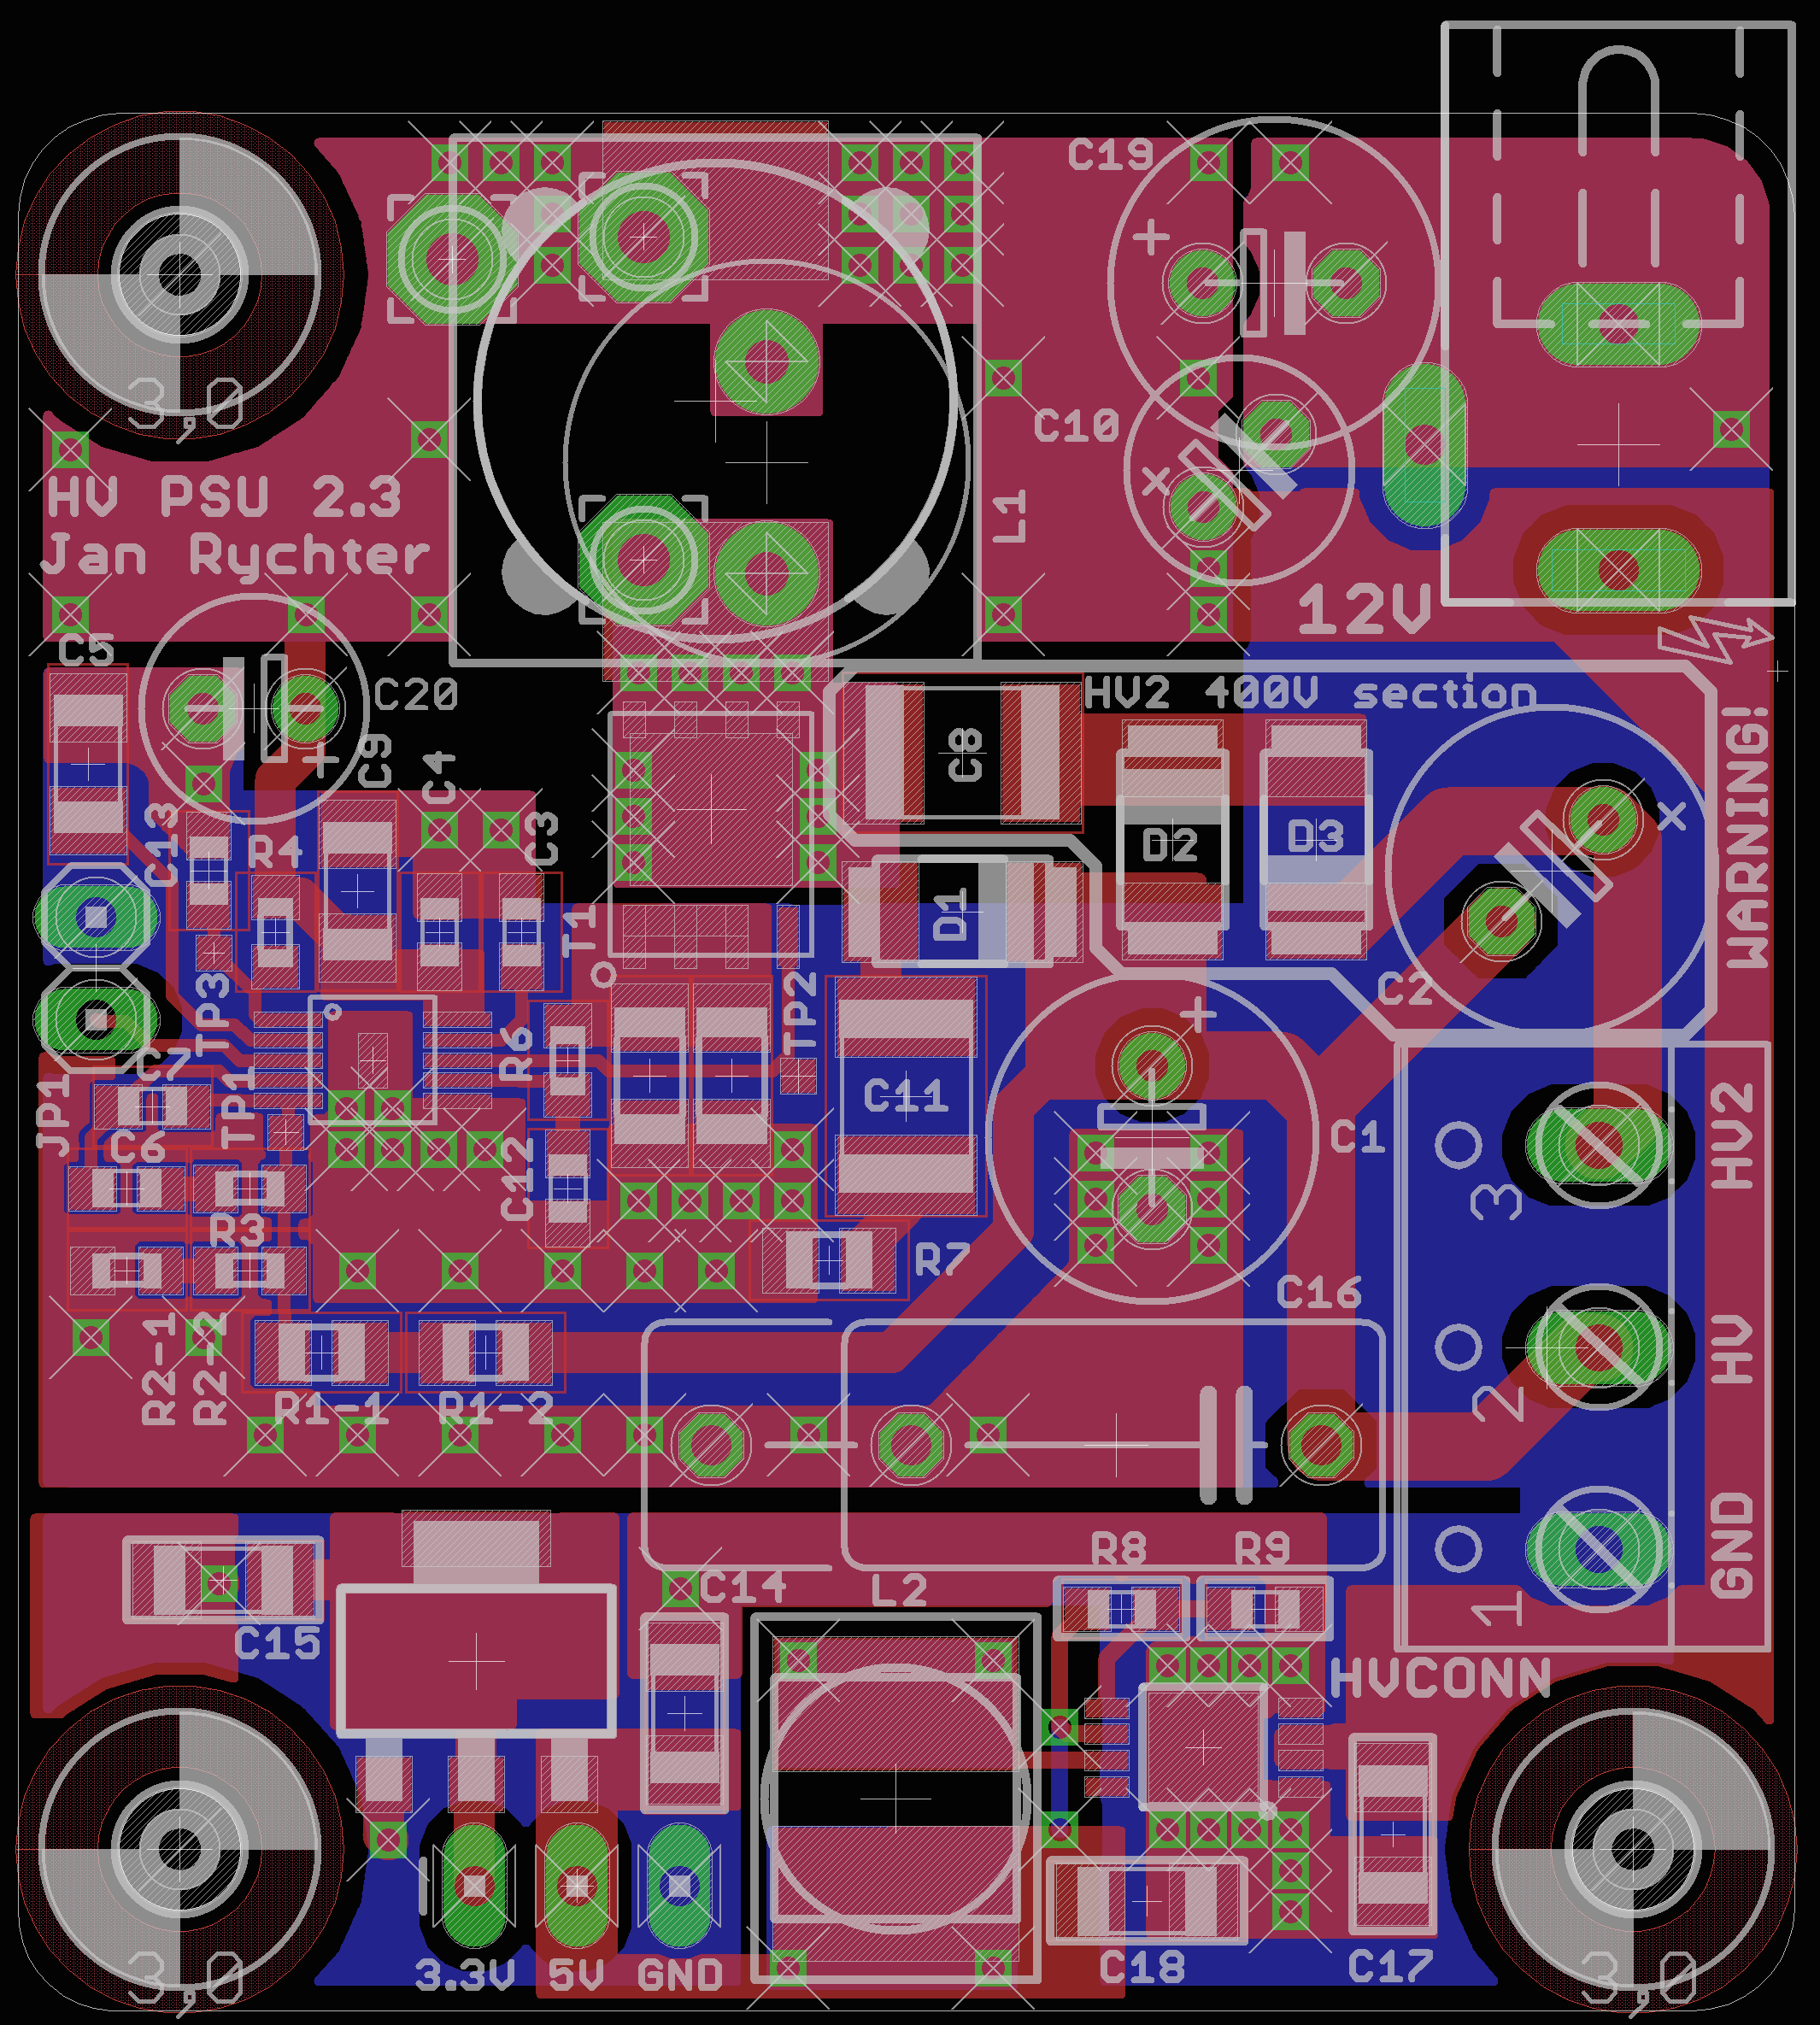 PCB layout. Note the careful ground plane handling.